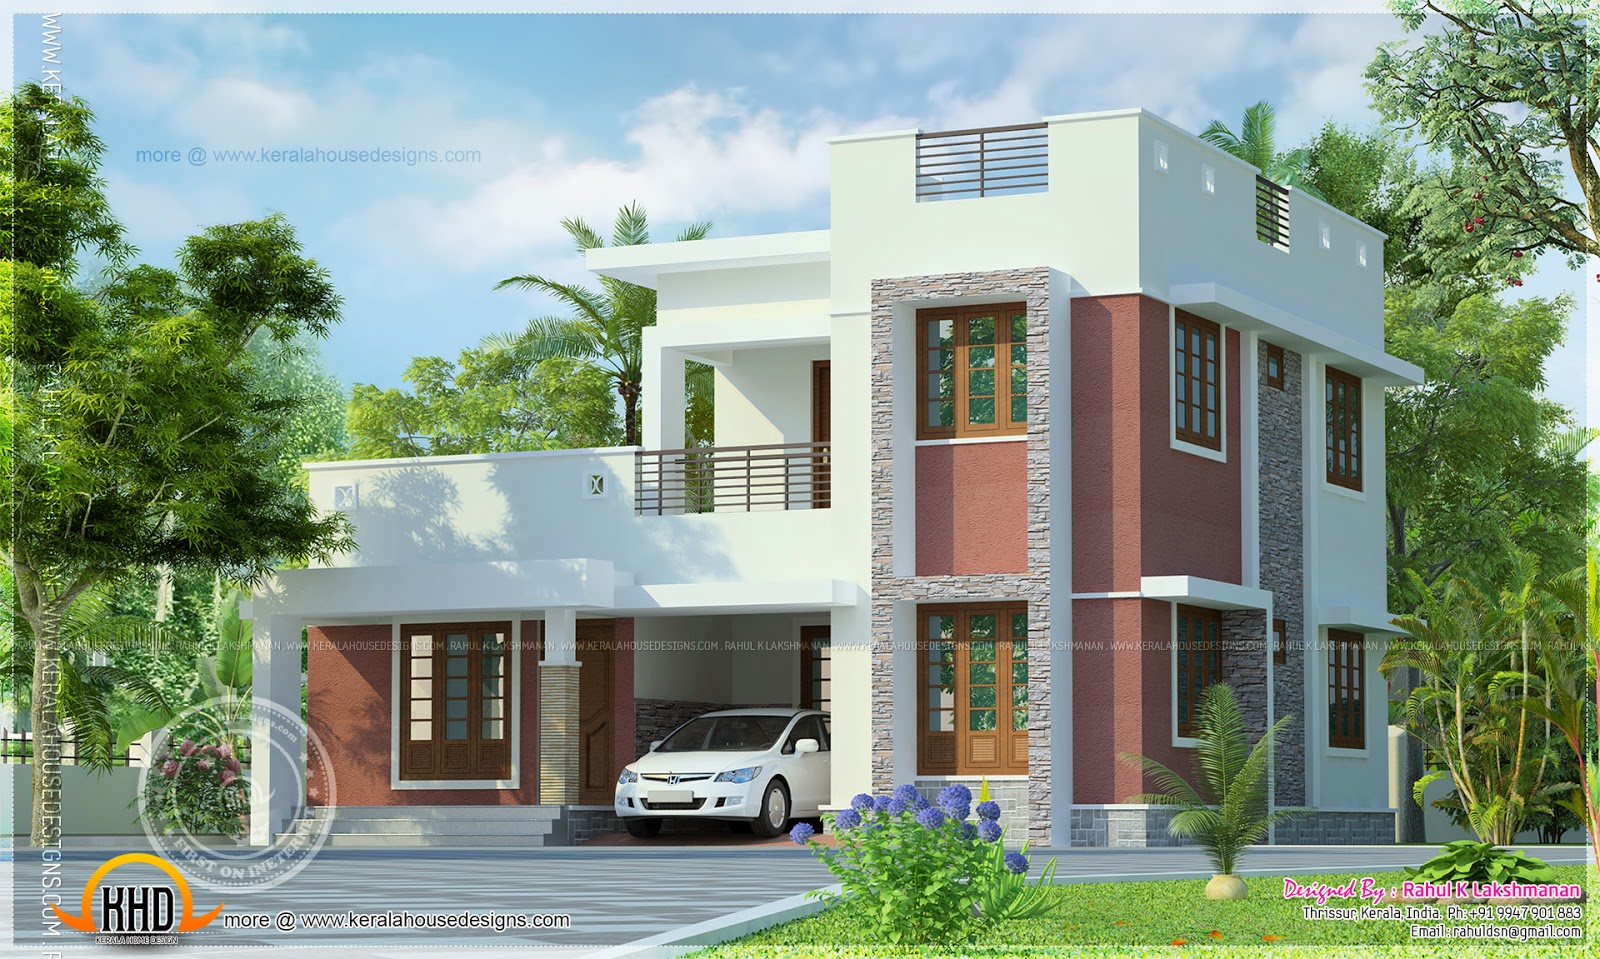 Simple flat roof house exterior kerala home design and for Simple house front design